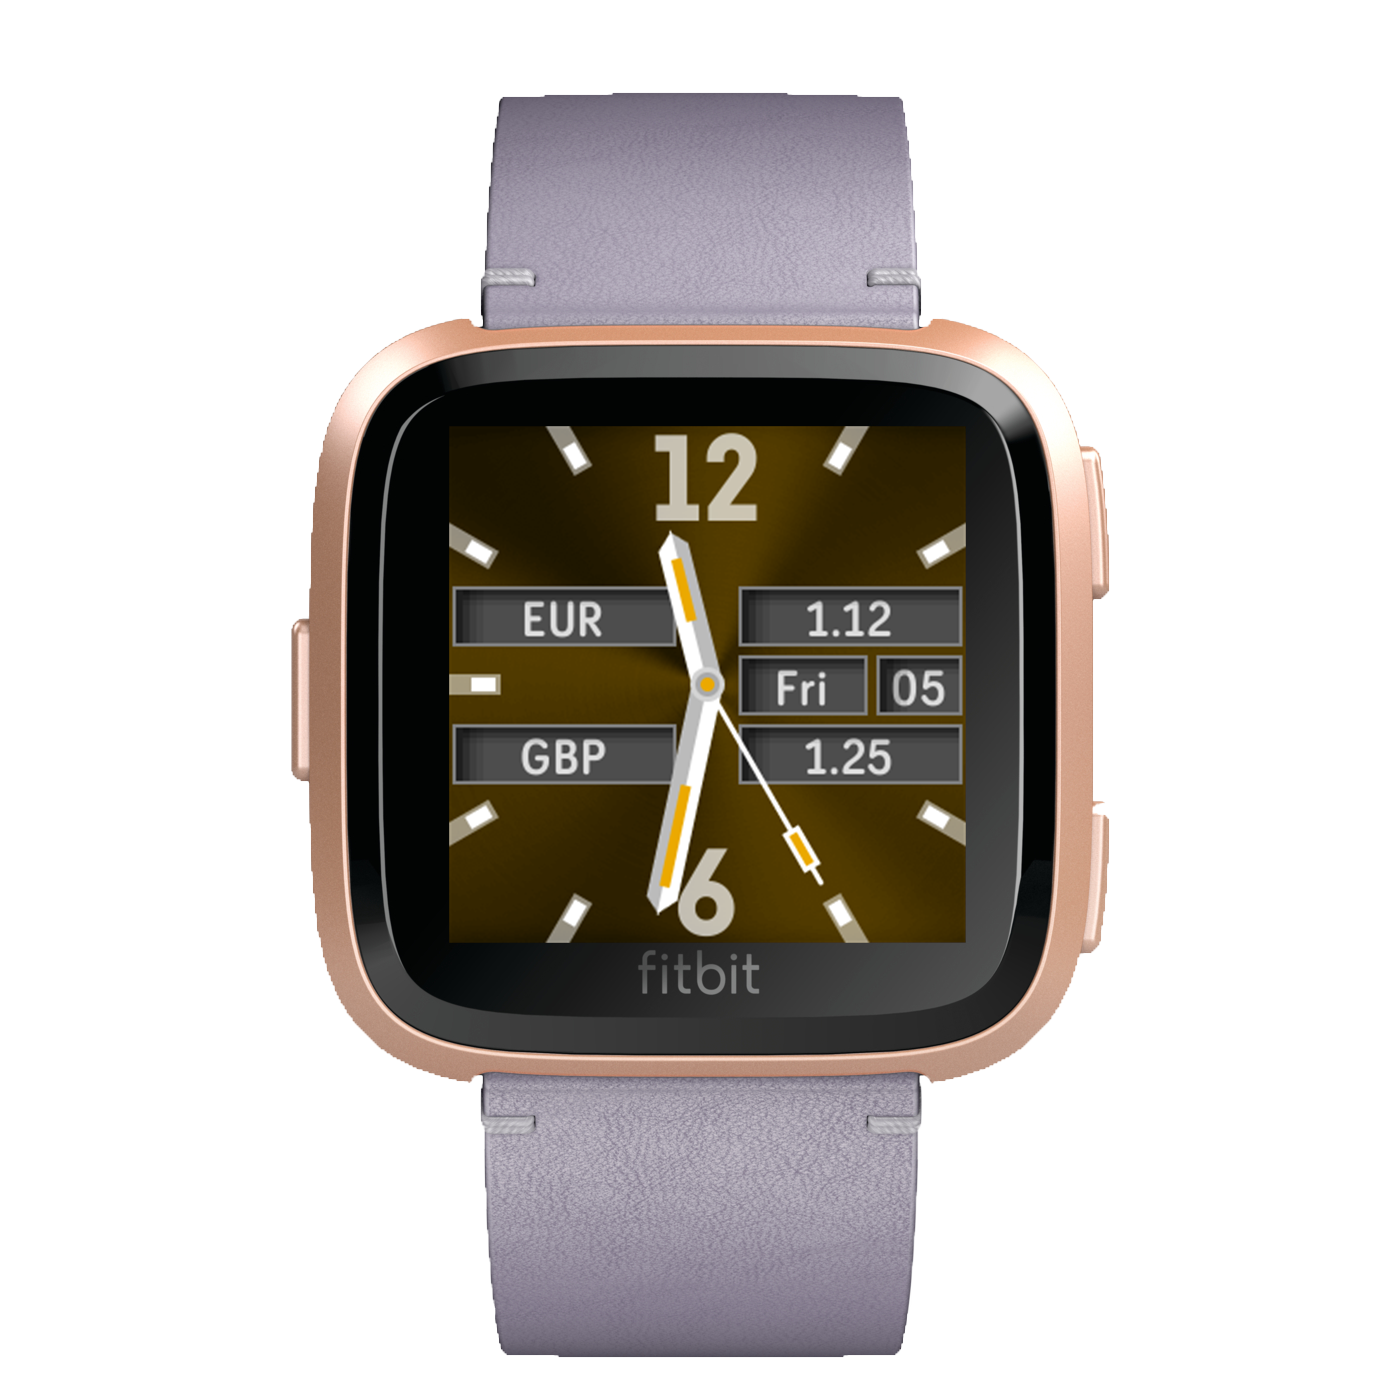 www.watchfacestore.com has amazing #fitbit #watchfaces. Get to know the King - Forex. An elegant des...